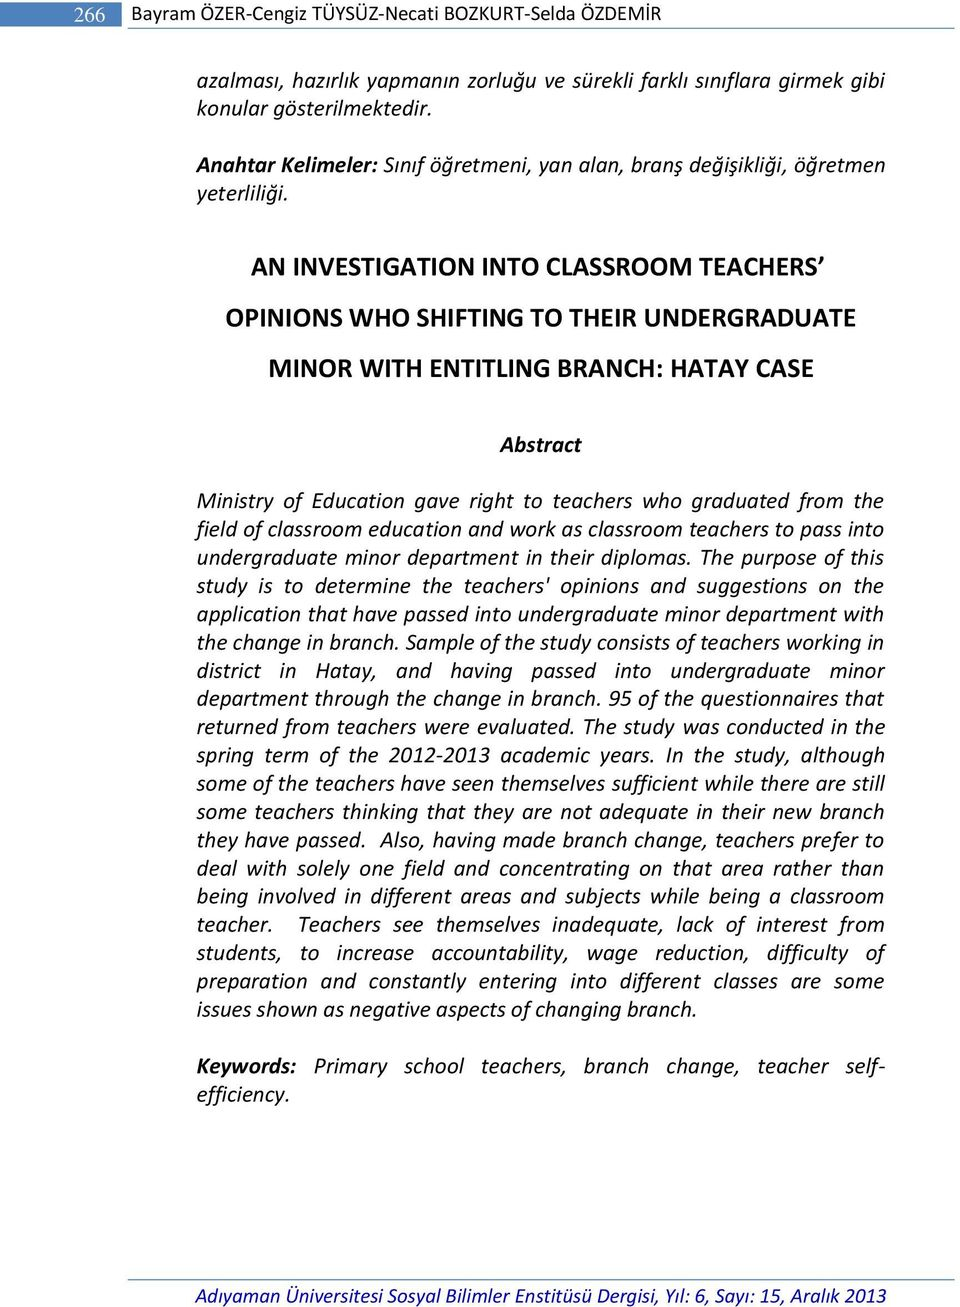 AN INVESTIGATION INTO CLASSROOM TEACHERS OPINIONS WHO SHIFTING TO THEIR UNDERGRADUATE MINOR WITH ENTITLING BRANCH: HATAY CASE Abstract Ministry of Education gave right to teachers who graduated from